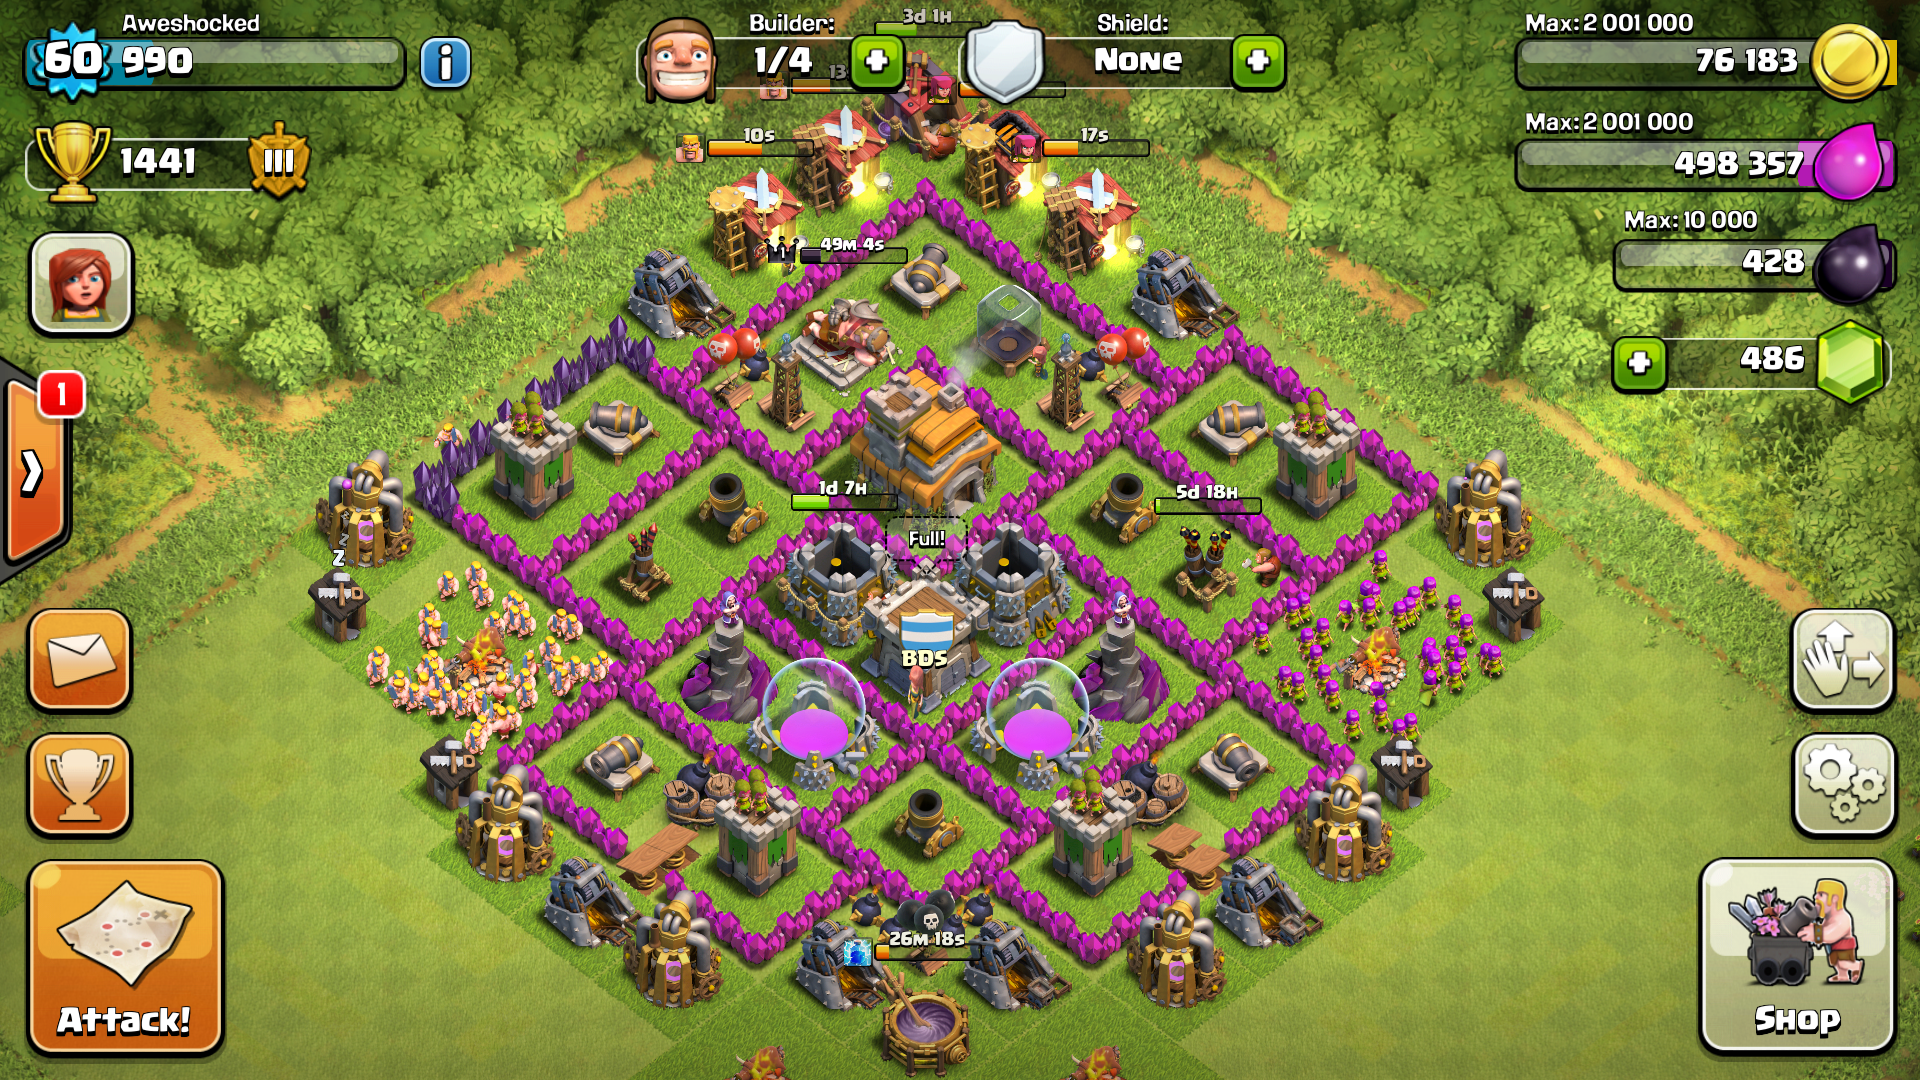 Level 7 Town Hall Hybrid Base Google Search Clash Of Clans Clash Of Clans Levels Clash Of Clans Hack